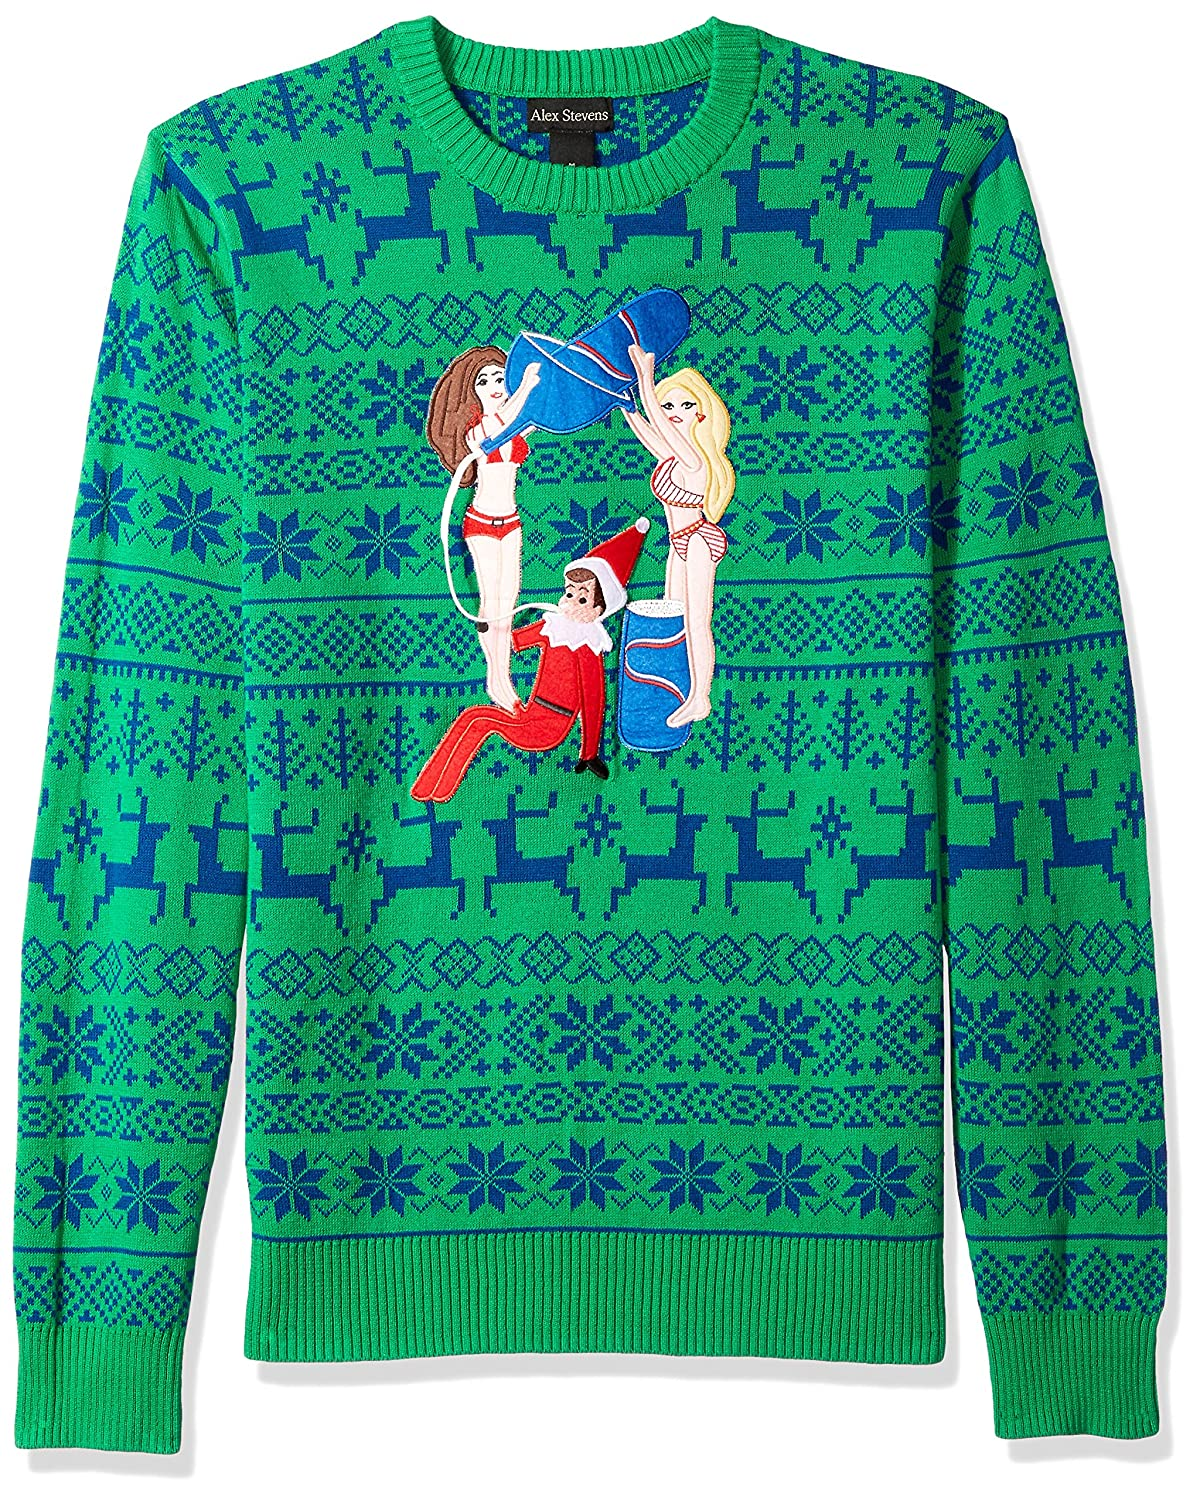 Alex Stevens Mens Drunk Elf Ugly Christmas Sweater